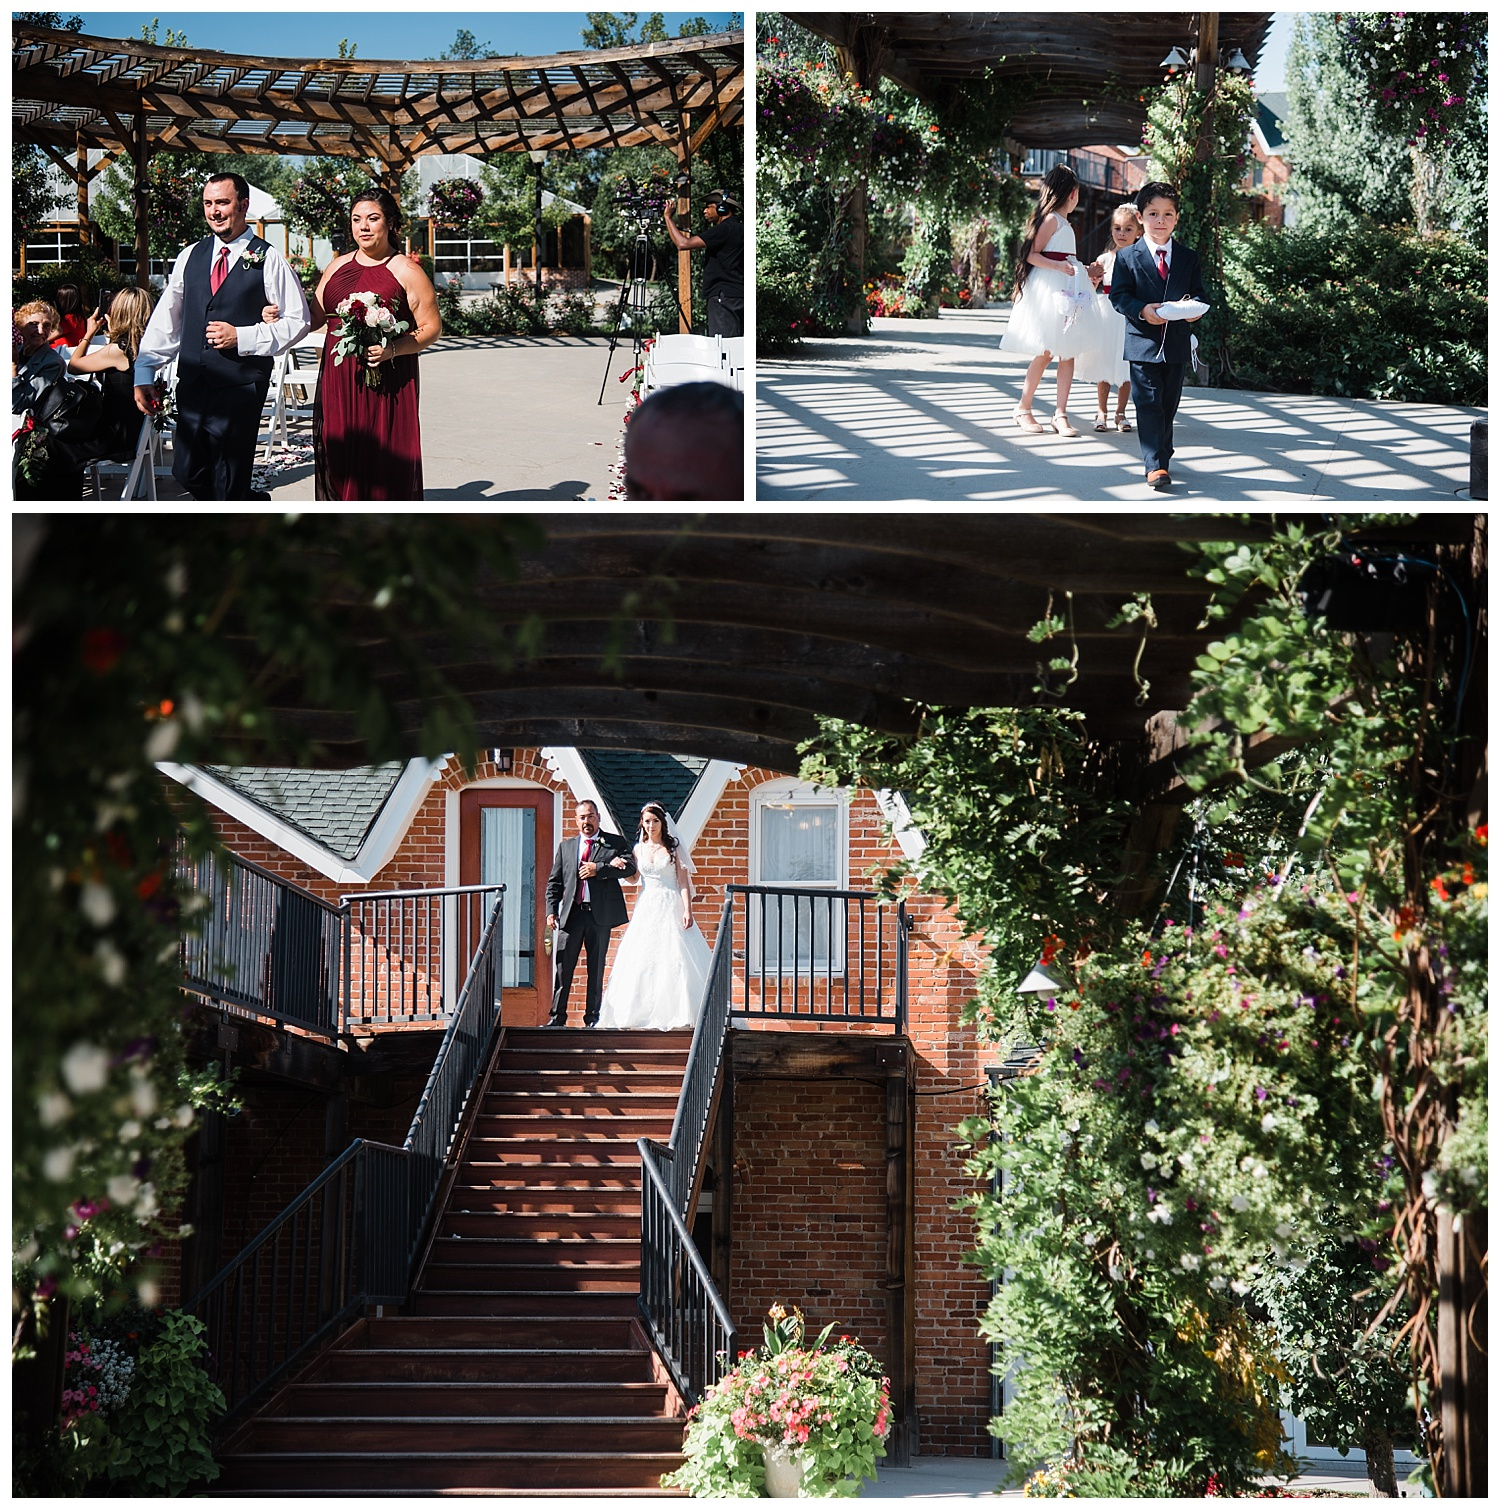 Brookside_Gardens_Colorado_Wedding_Photography_Apollo_Fields_10.jpg